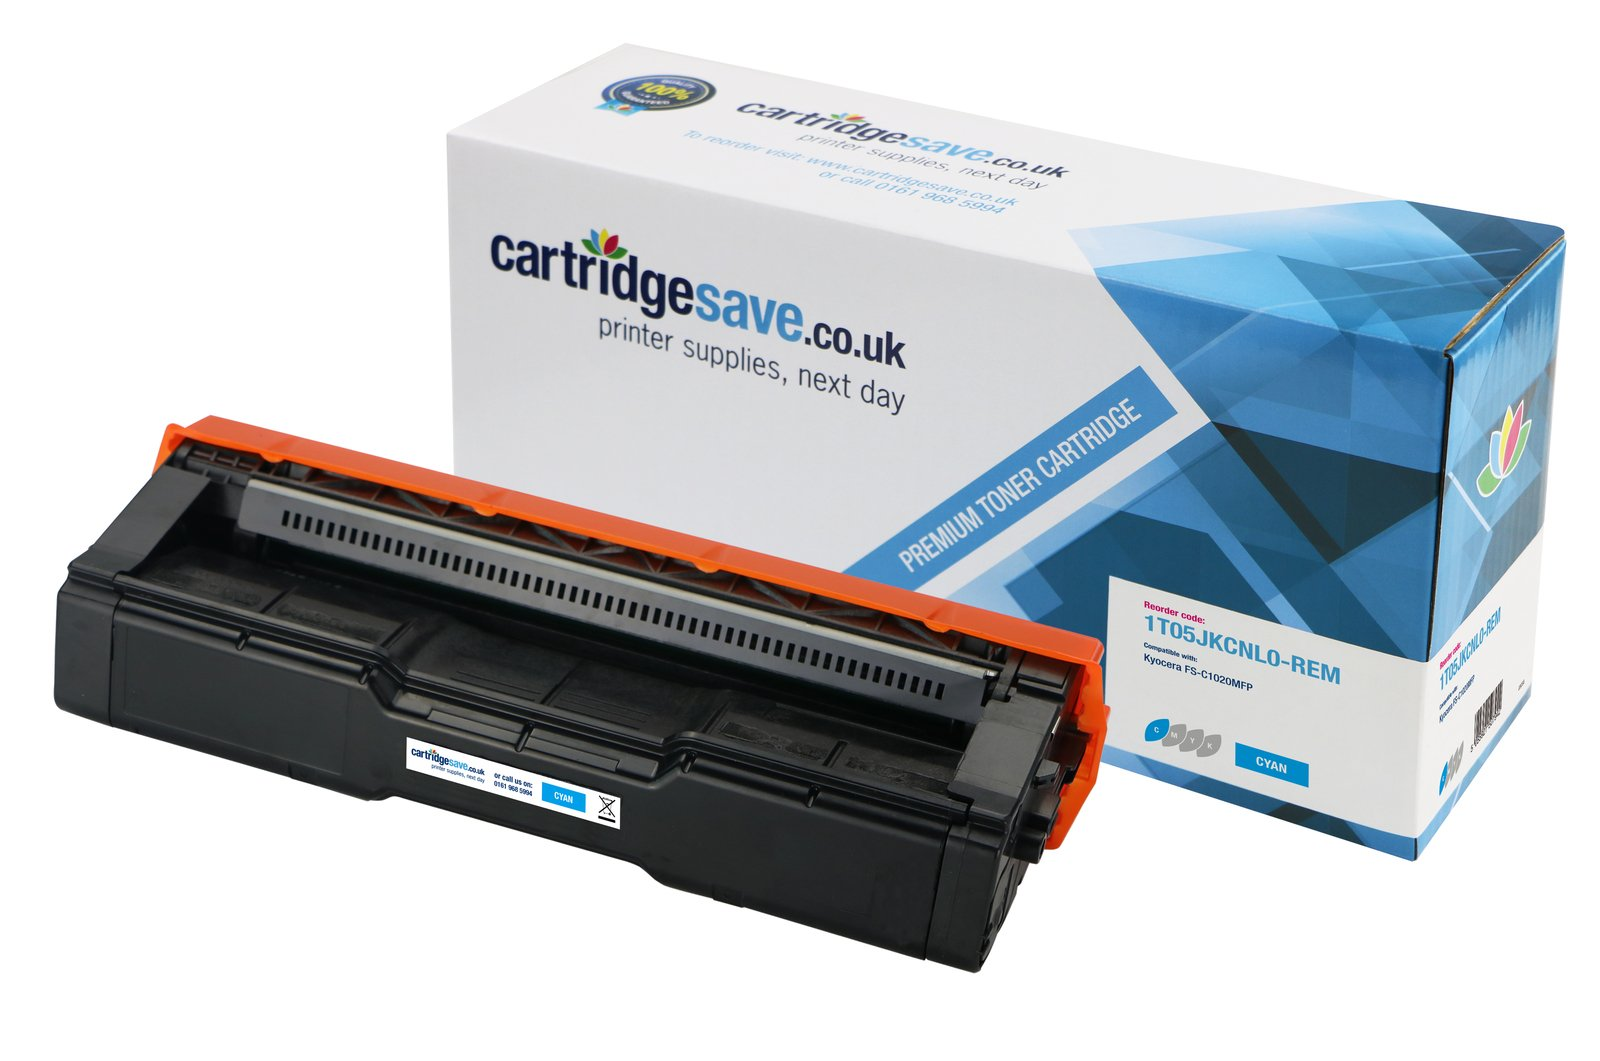 Compatible Cyan Kyocera TK-150C Toner Cartridge (Replaces Kyocera 1T05JKCNL0 Laser Printer Cartridge)